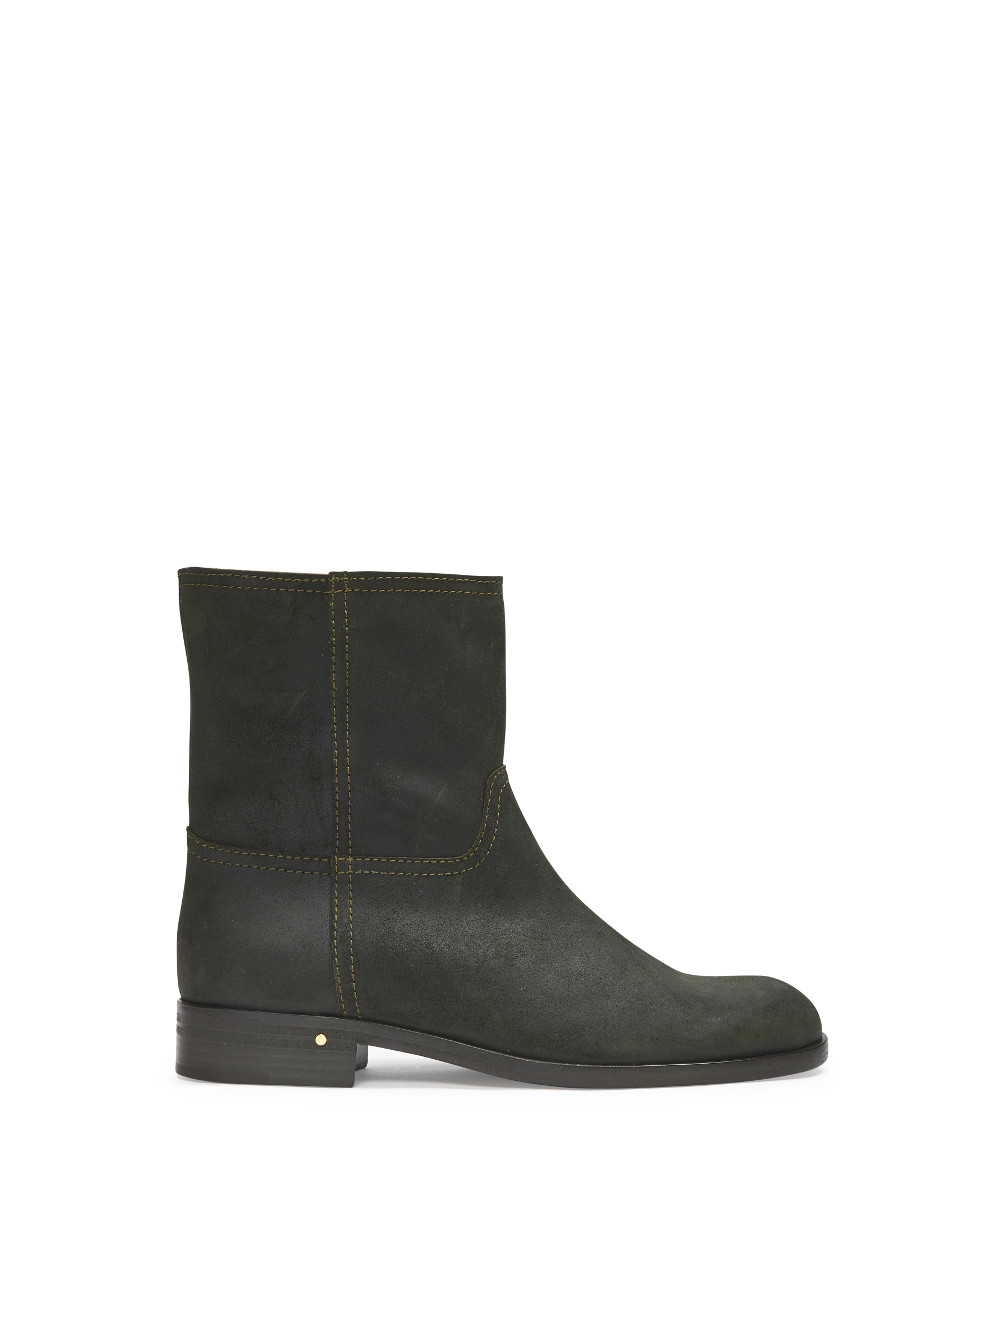 Bottines Serlin - Laurence Dacade